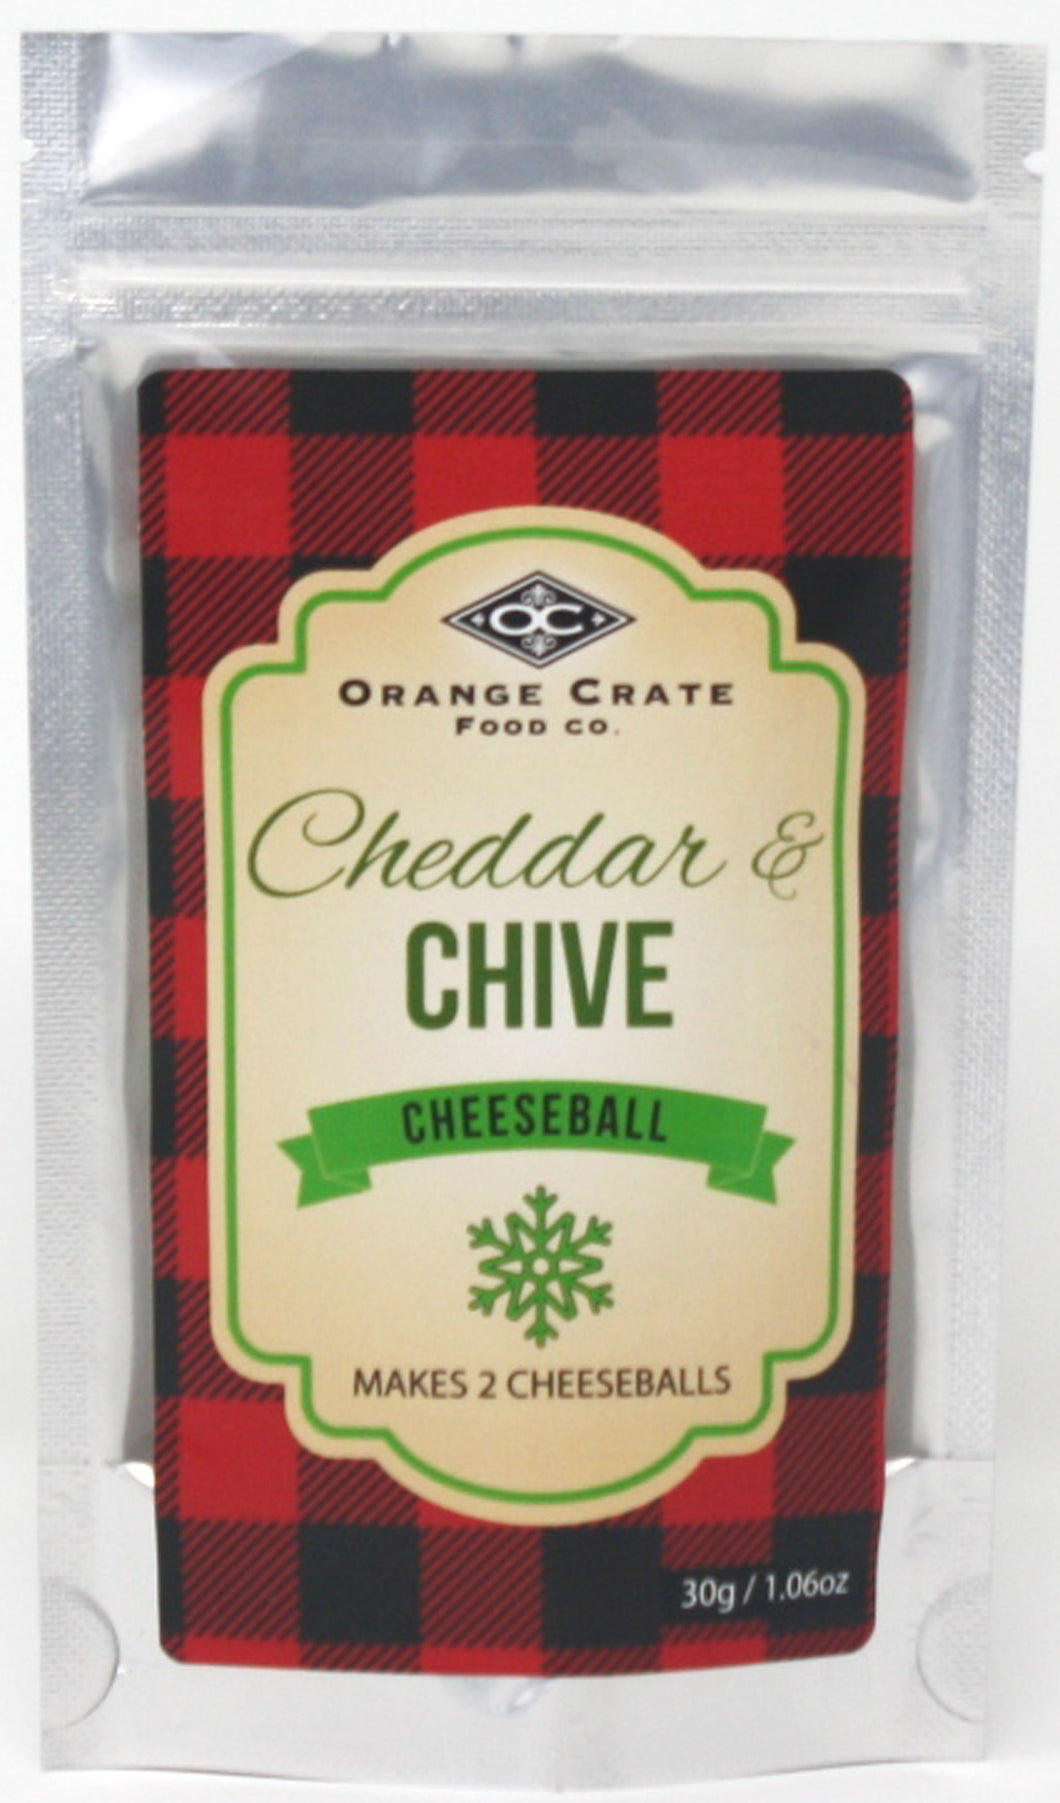 Chedder and Chive Cheeseball